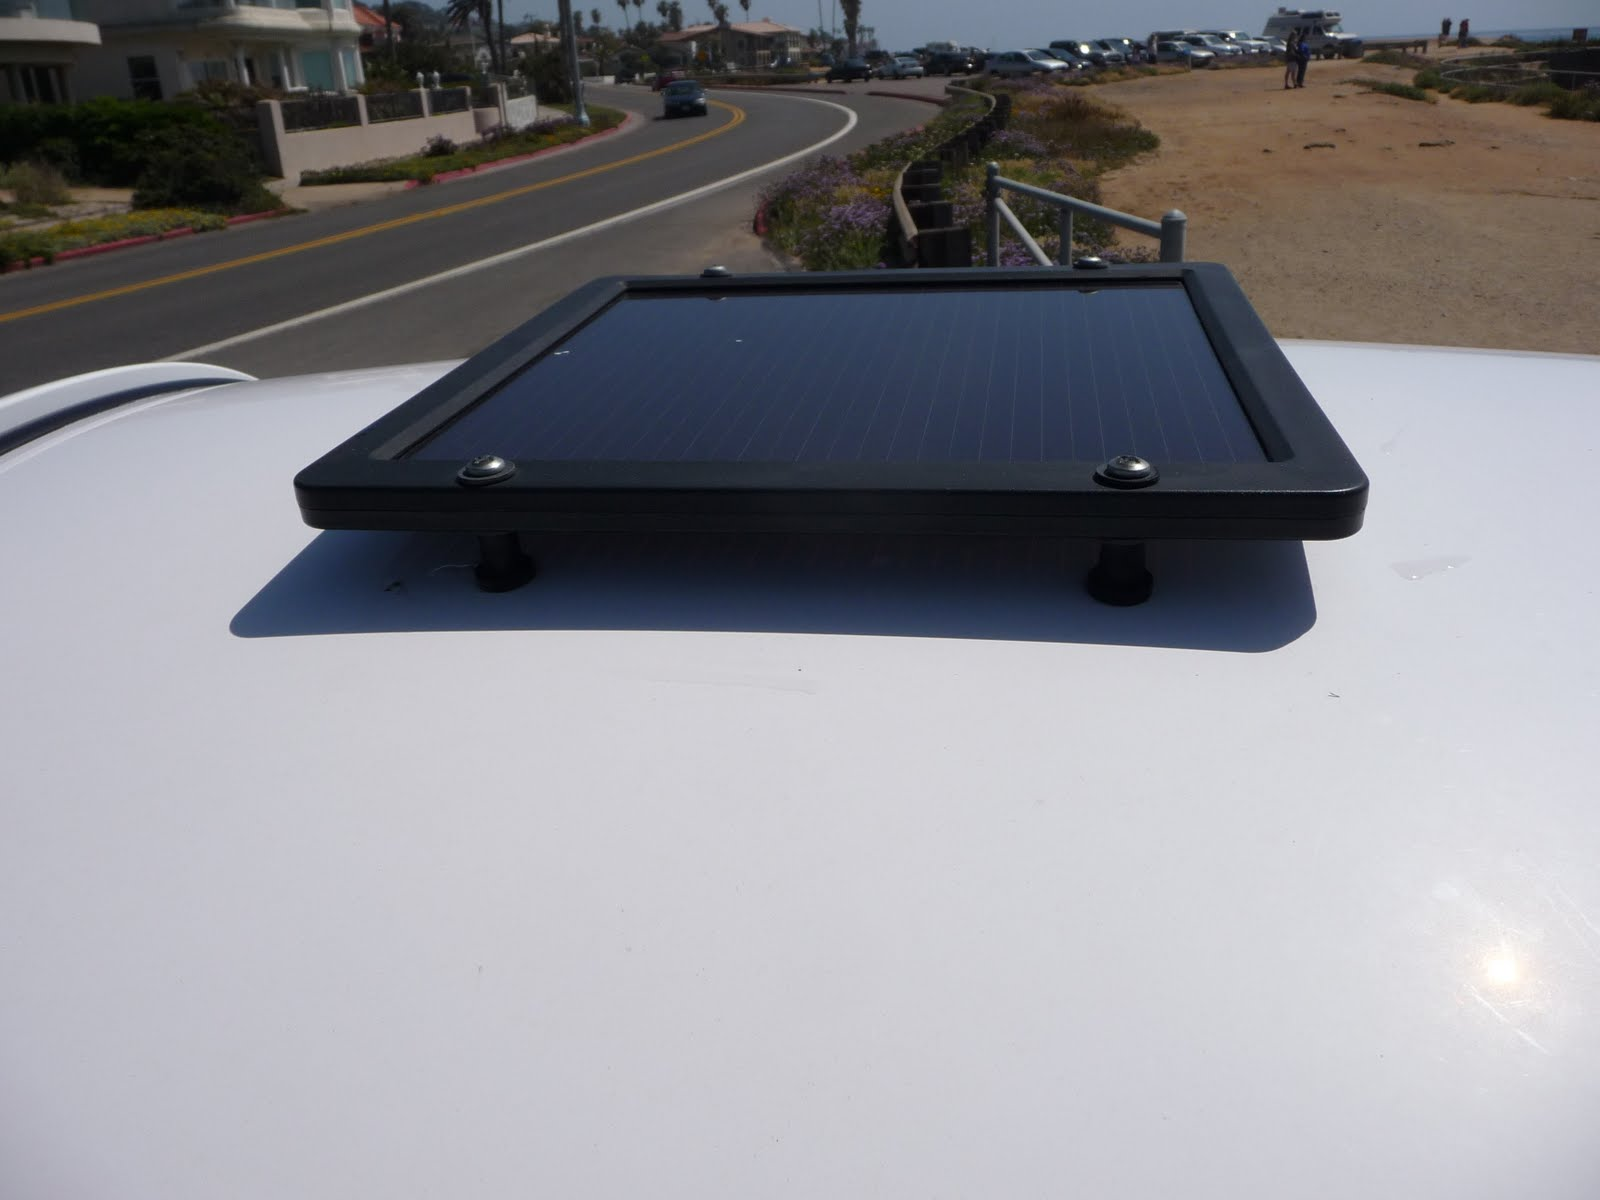 medium resolution of i added a solar panel to charge the stereo battery when the gem car wasn t being used and of course parked in the sun no point to this if you re parking